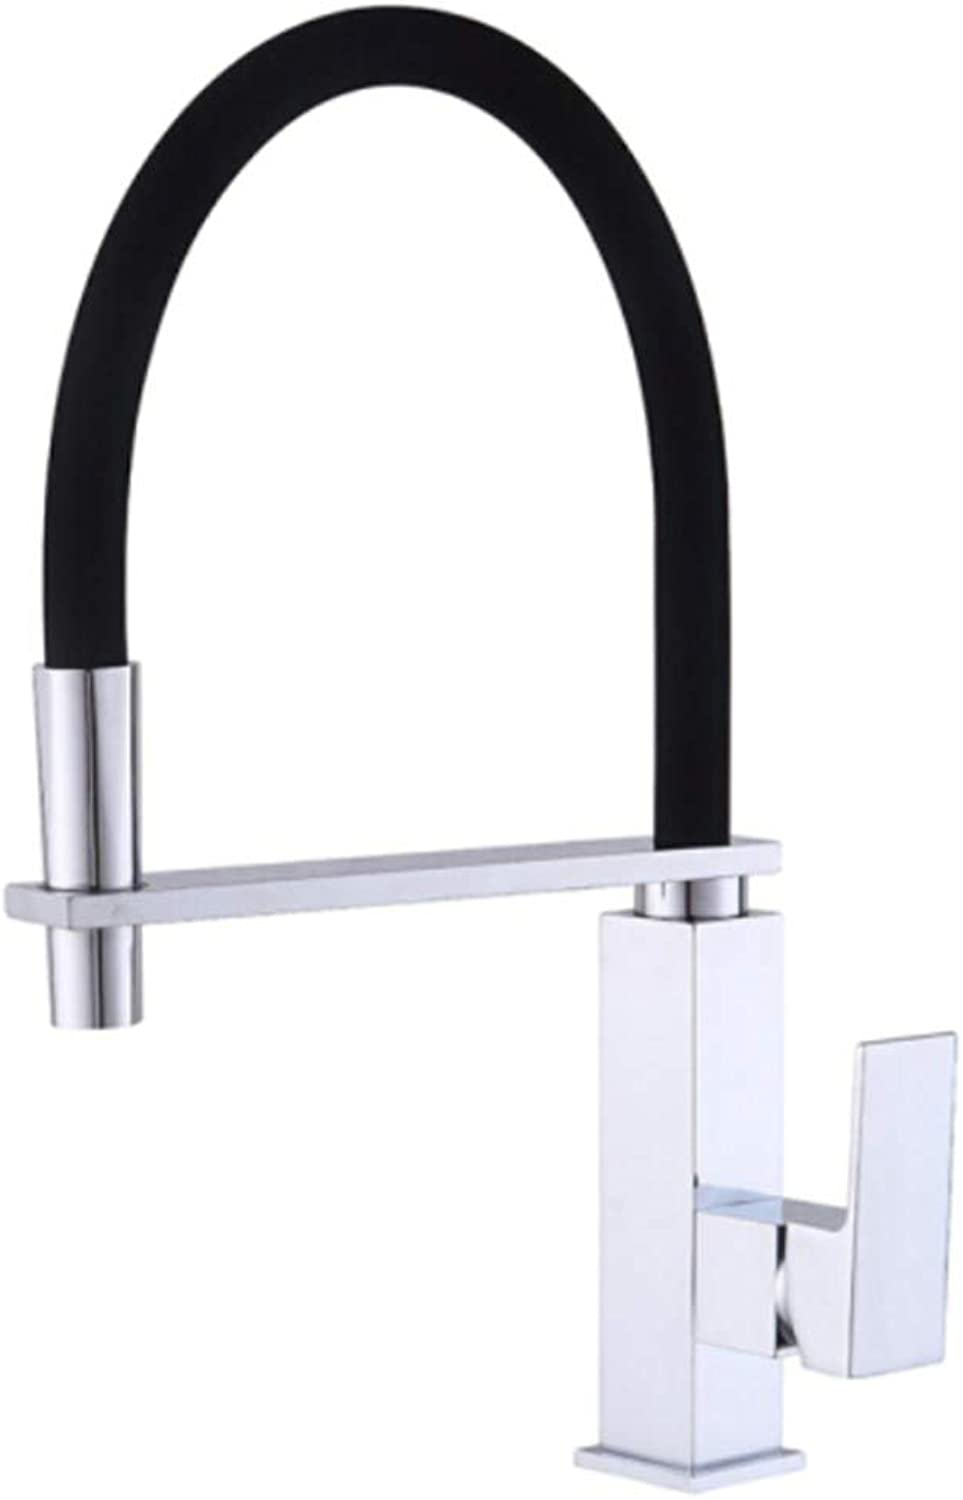 Basin Taps Swivel Spout Faucet Copper Kitchen Faucet Hot and Cold Square Antique Faucet Kitchen Basin Sink Mixing Valve